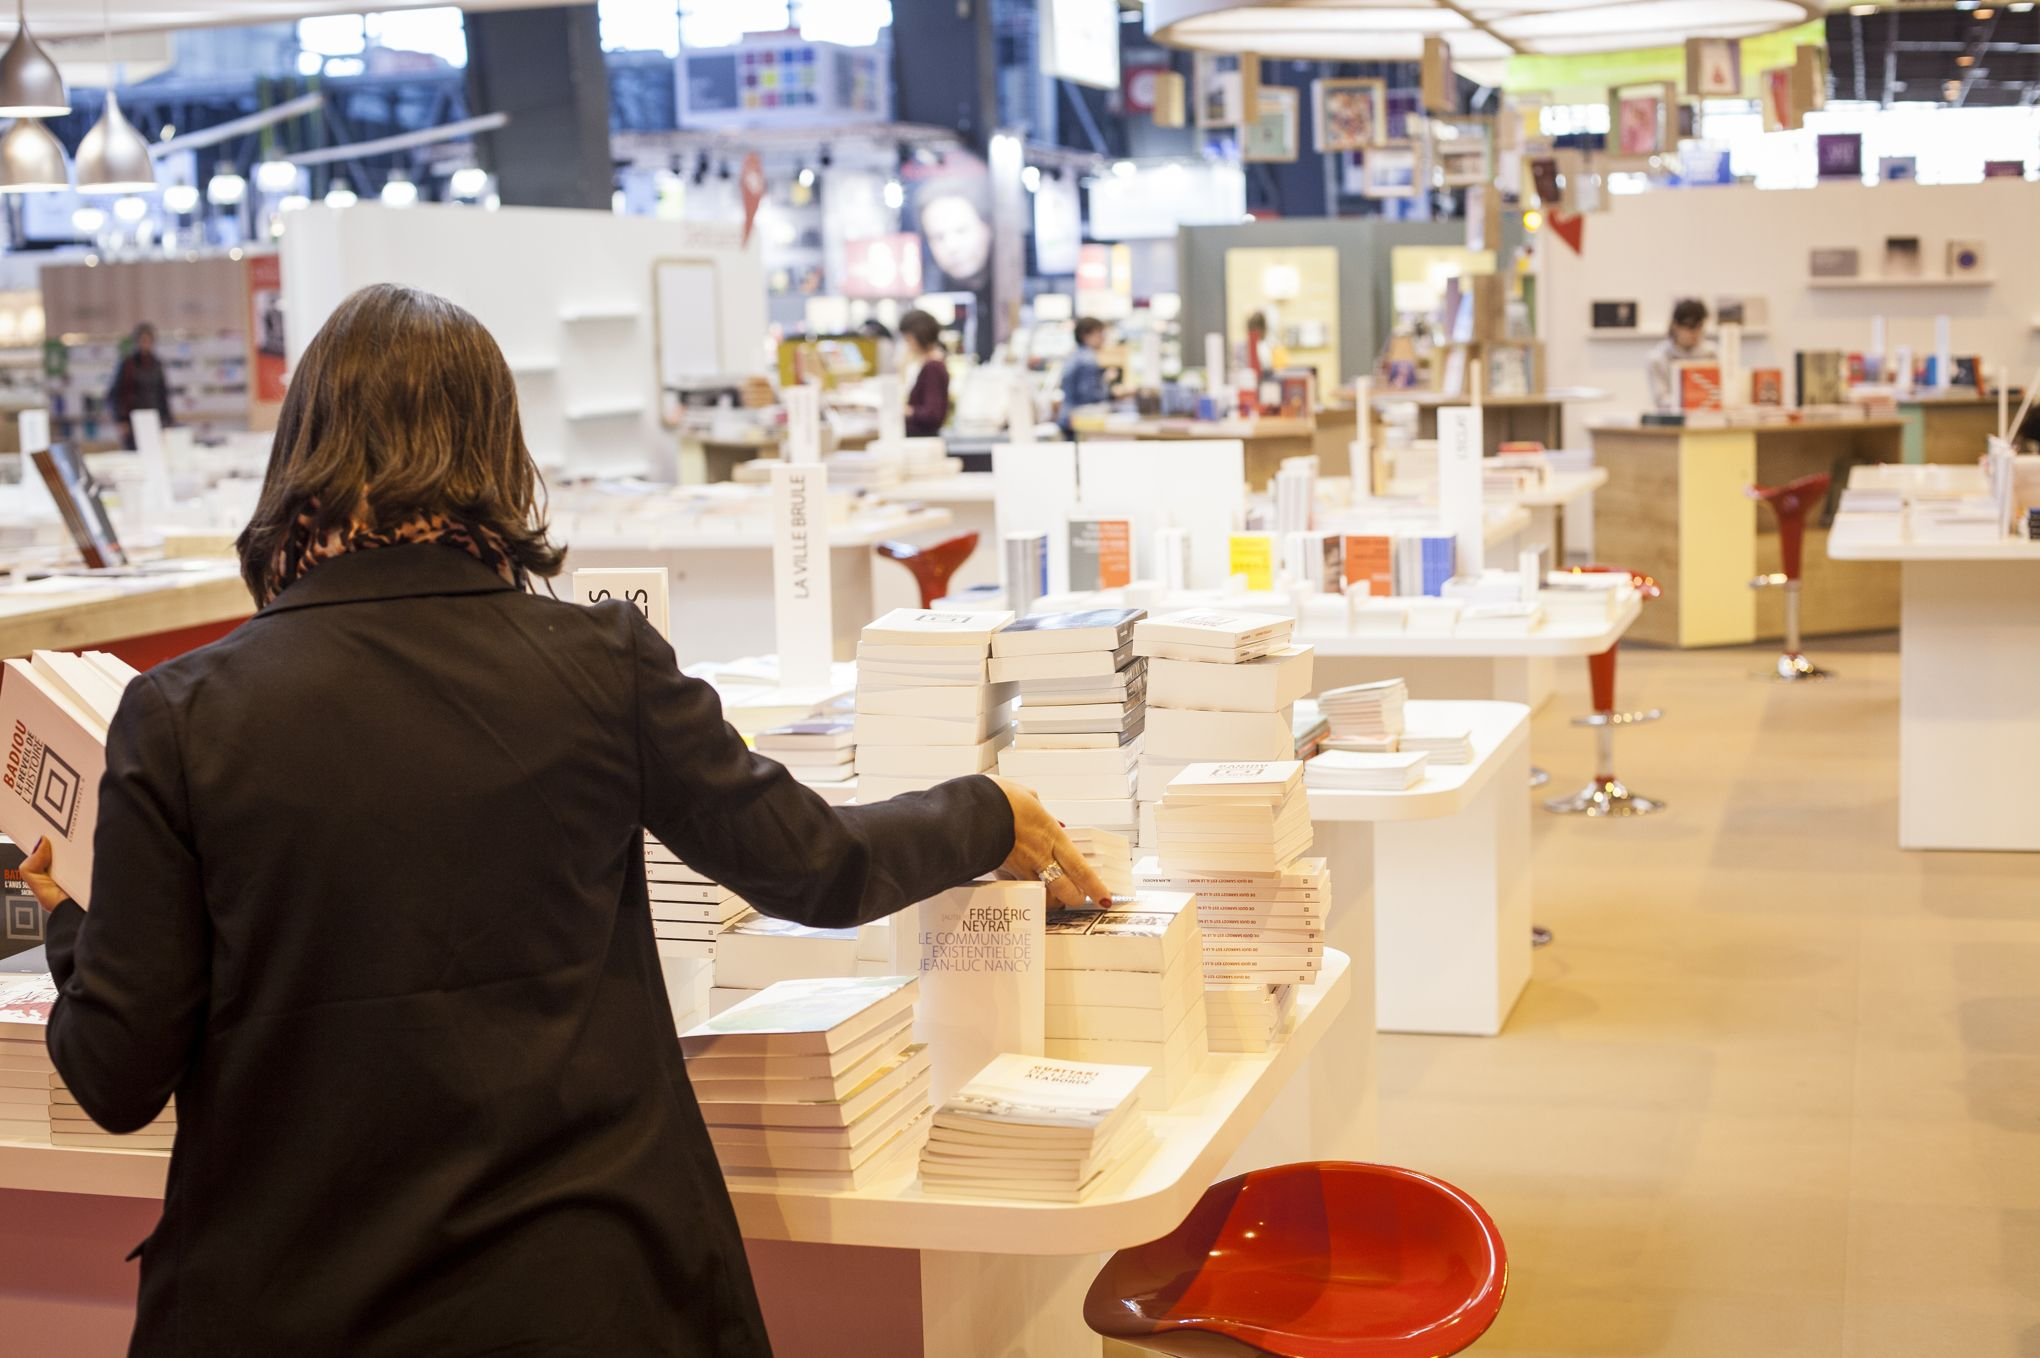 Le salon du livre reste porte de versailles mais se r nove for Salon e marketing porte de versaille